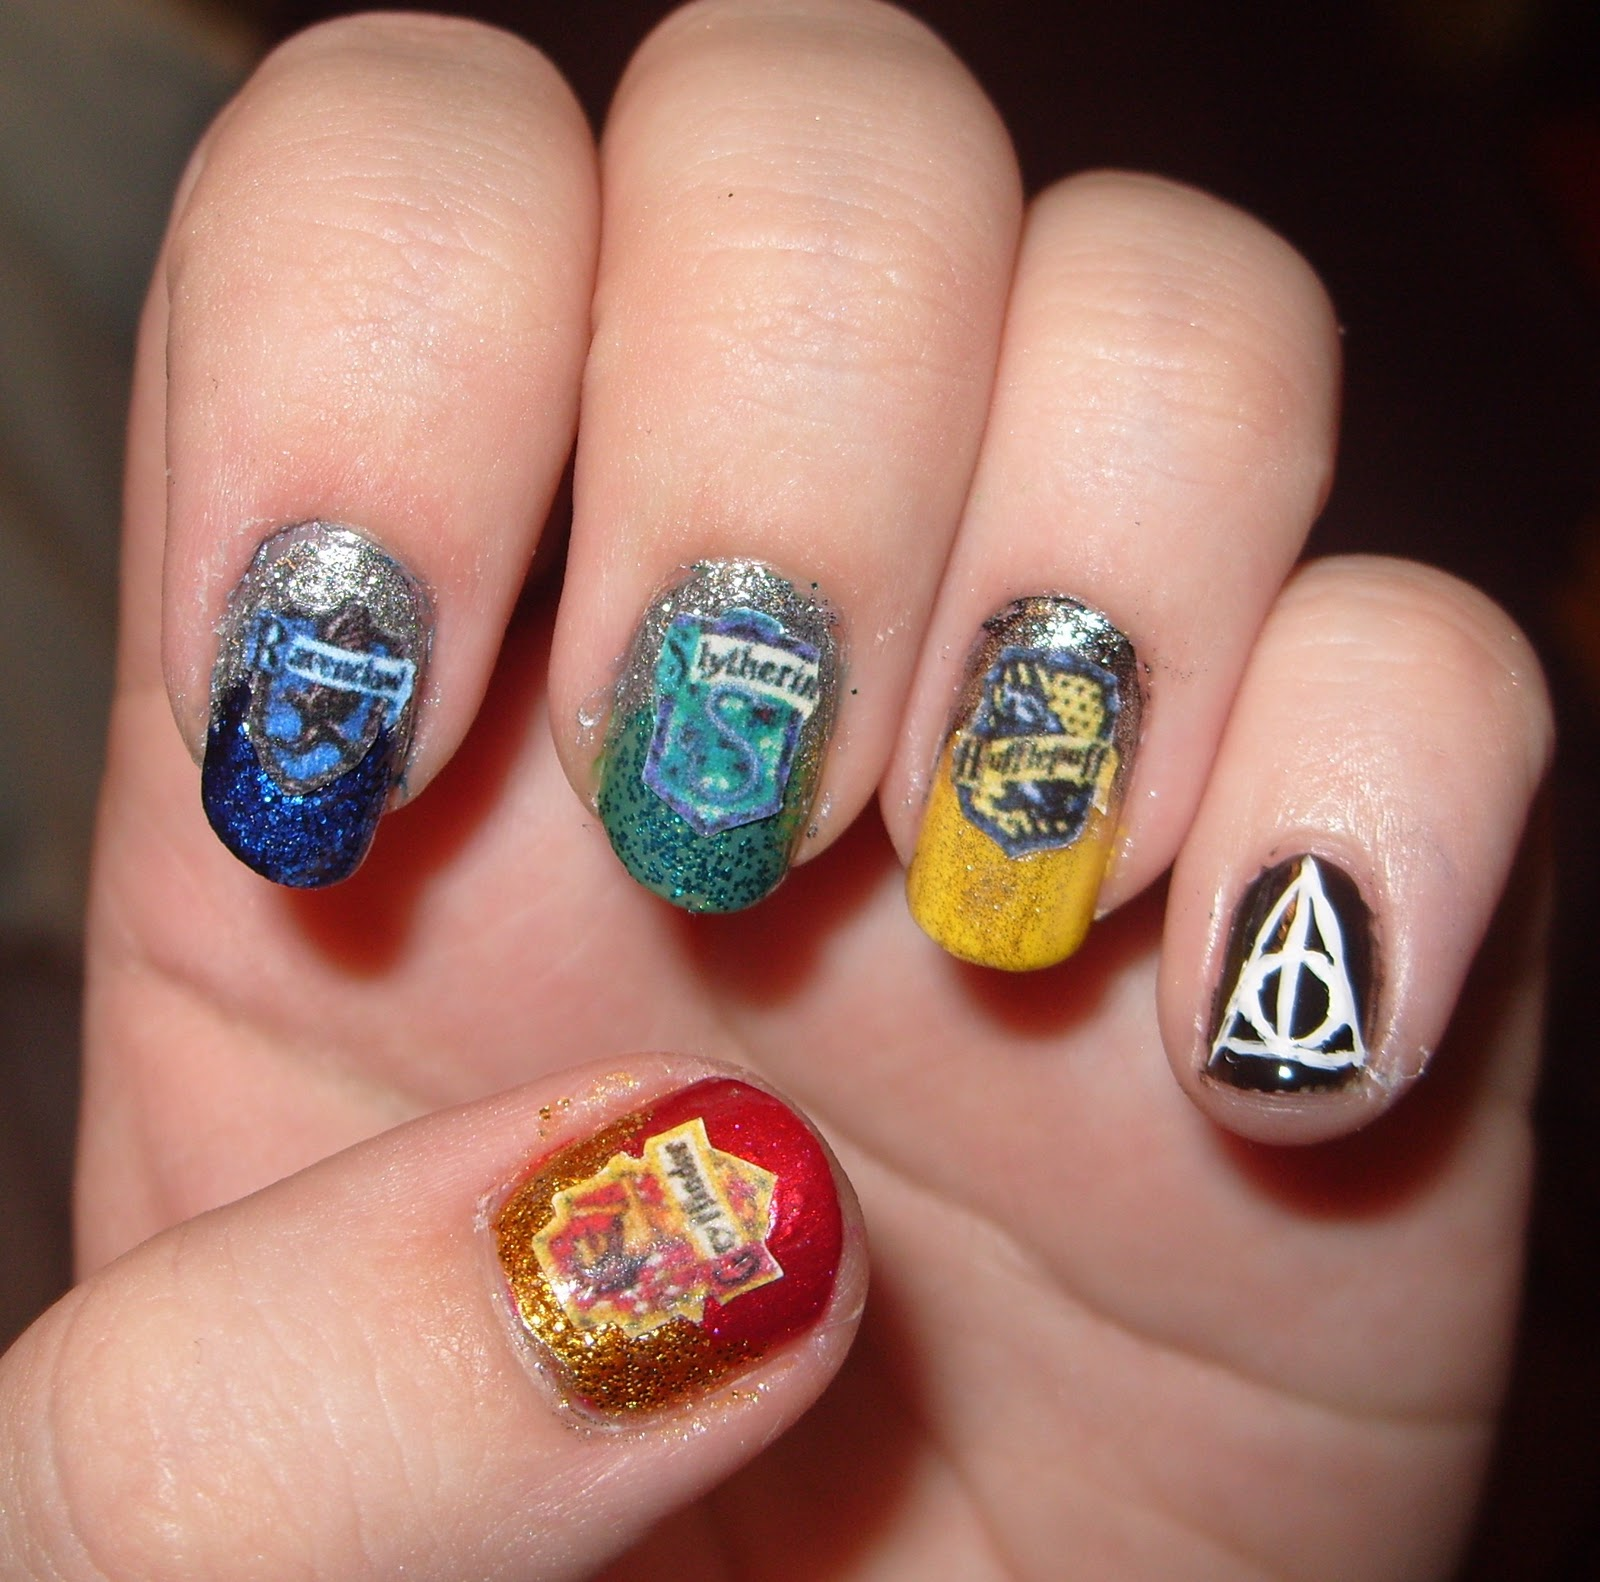 Sharihearts Harry Potter Themed Nail Art